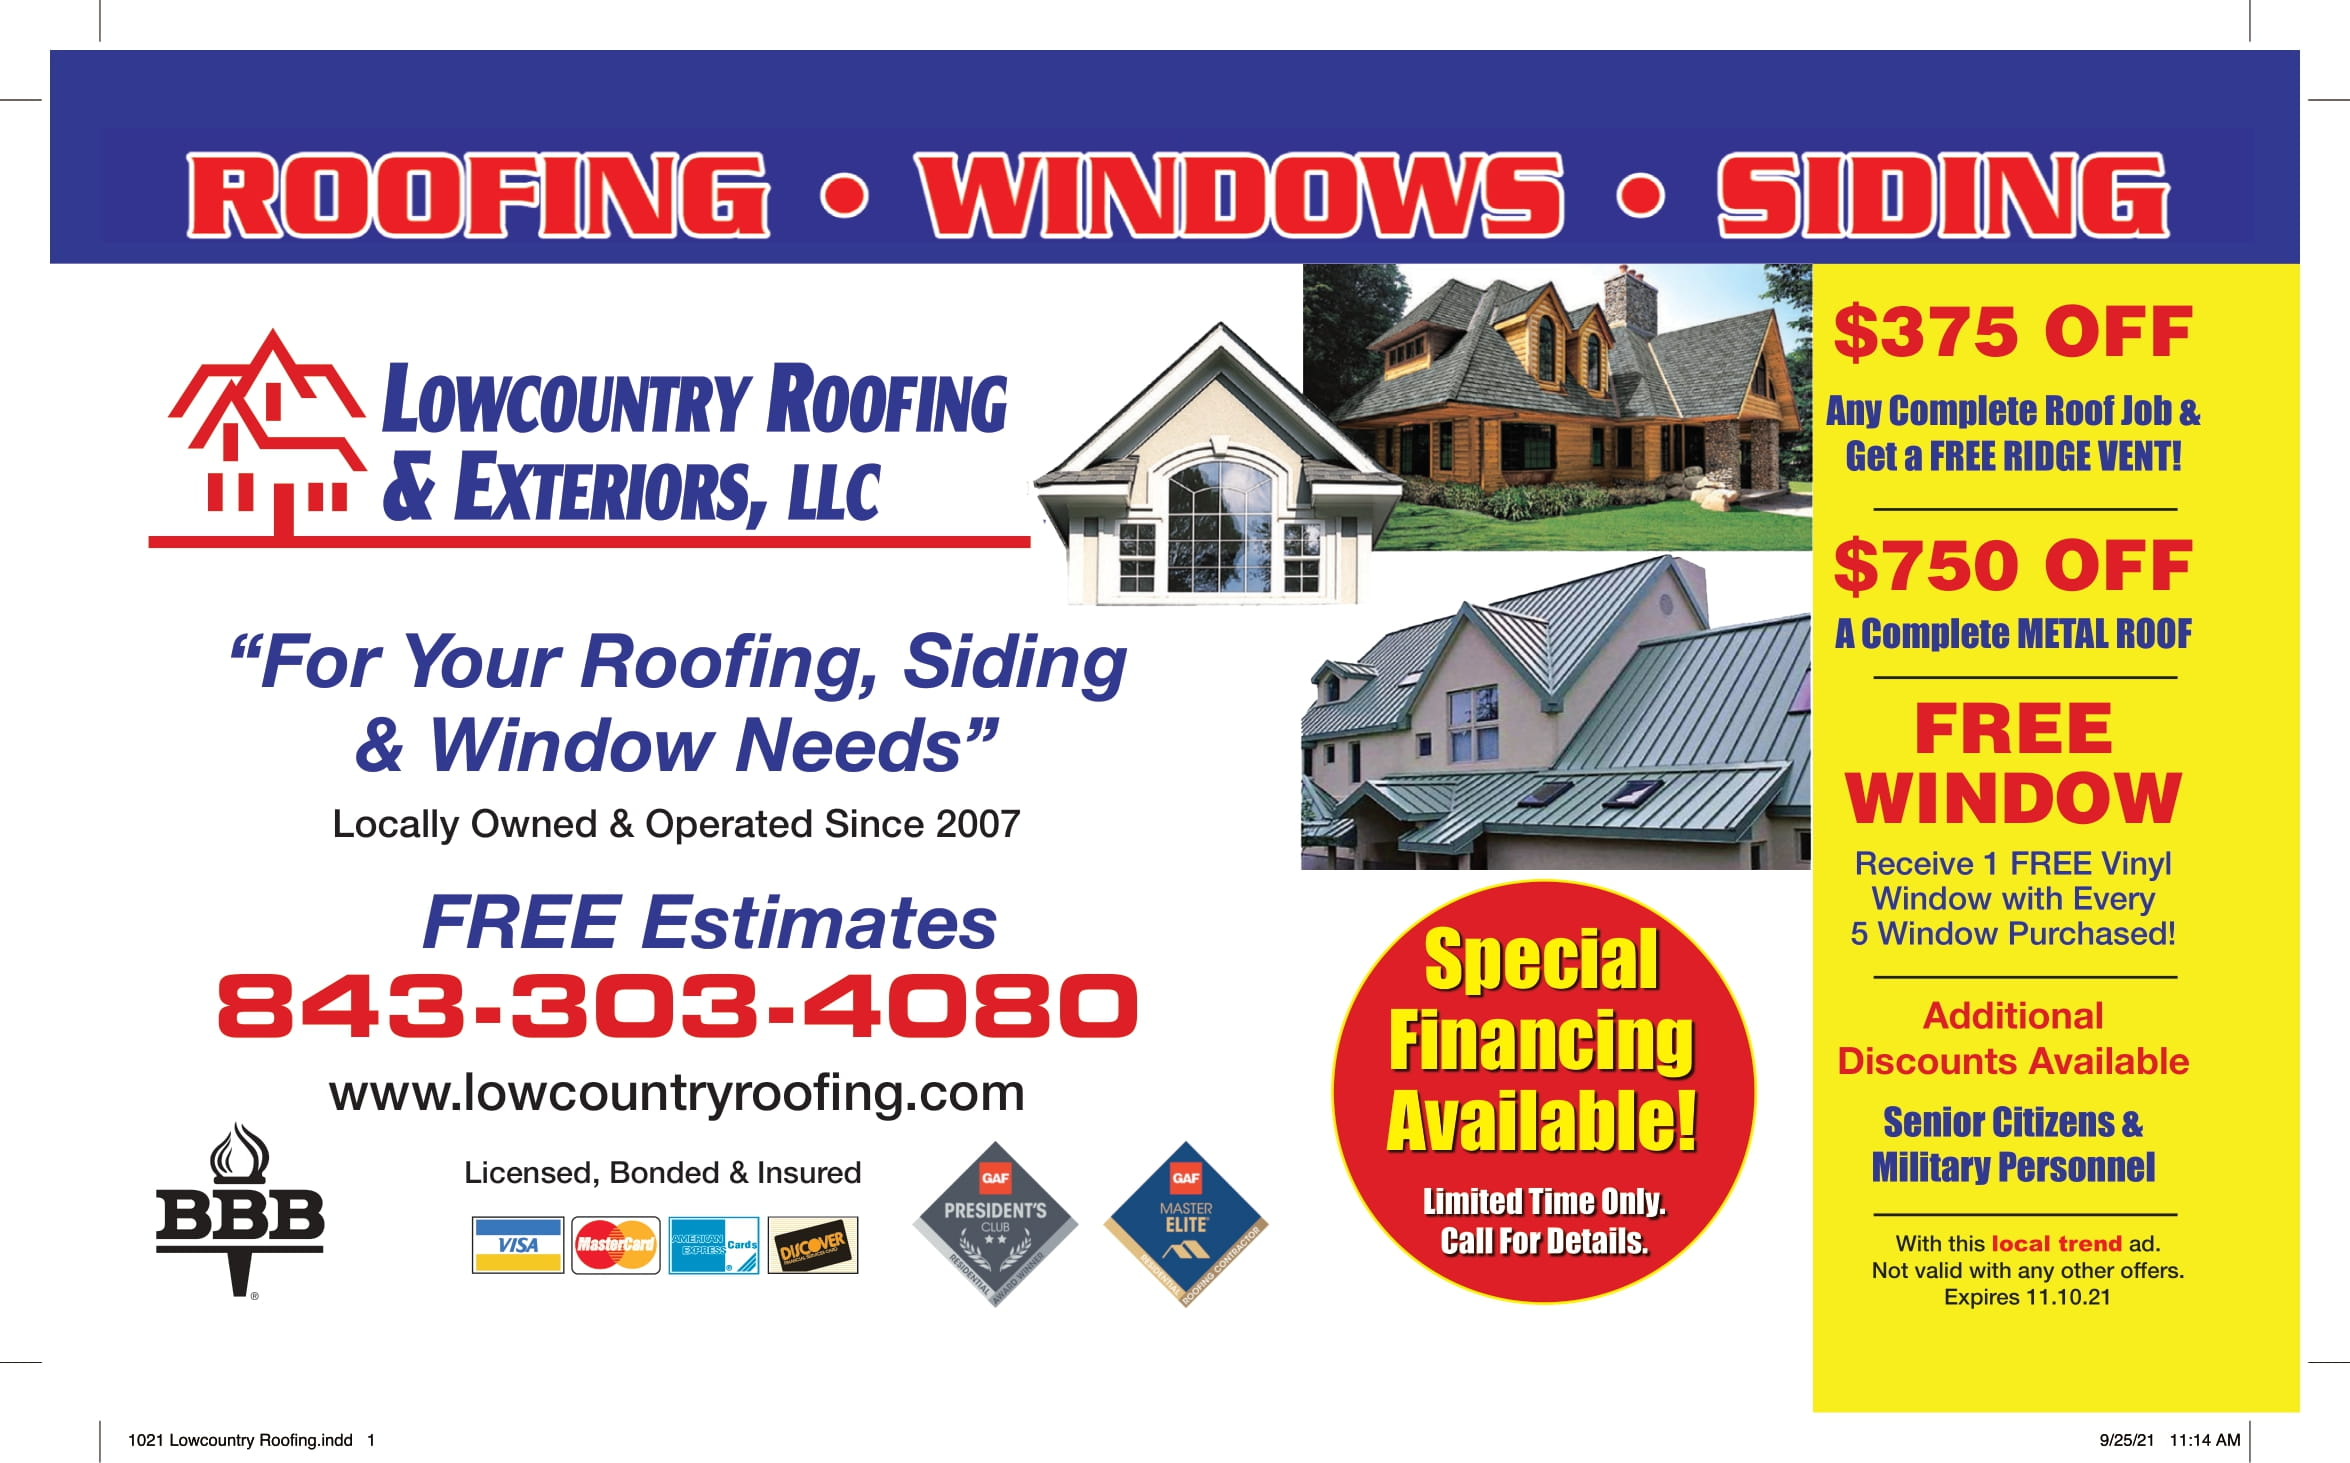 1021 Lowcountry Roofing 1